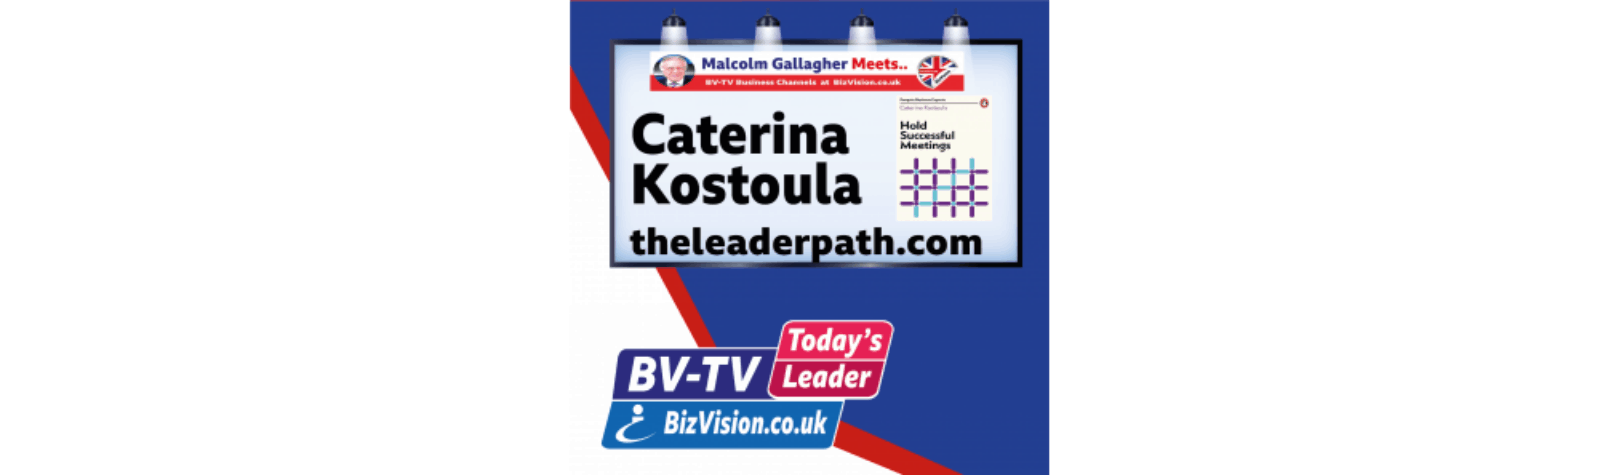 BV-TV Top Gun Sales & Marketing Show – Clarity & Leadership are key for scaling-up says The Leaderpath founder Caterina Kostoula